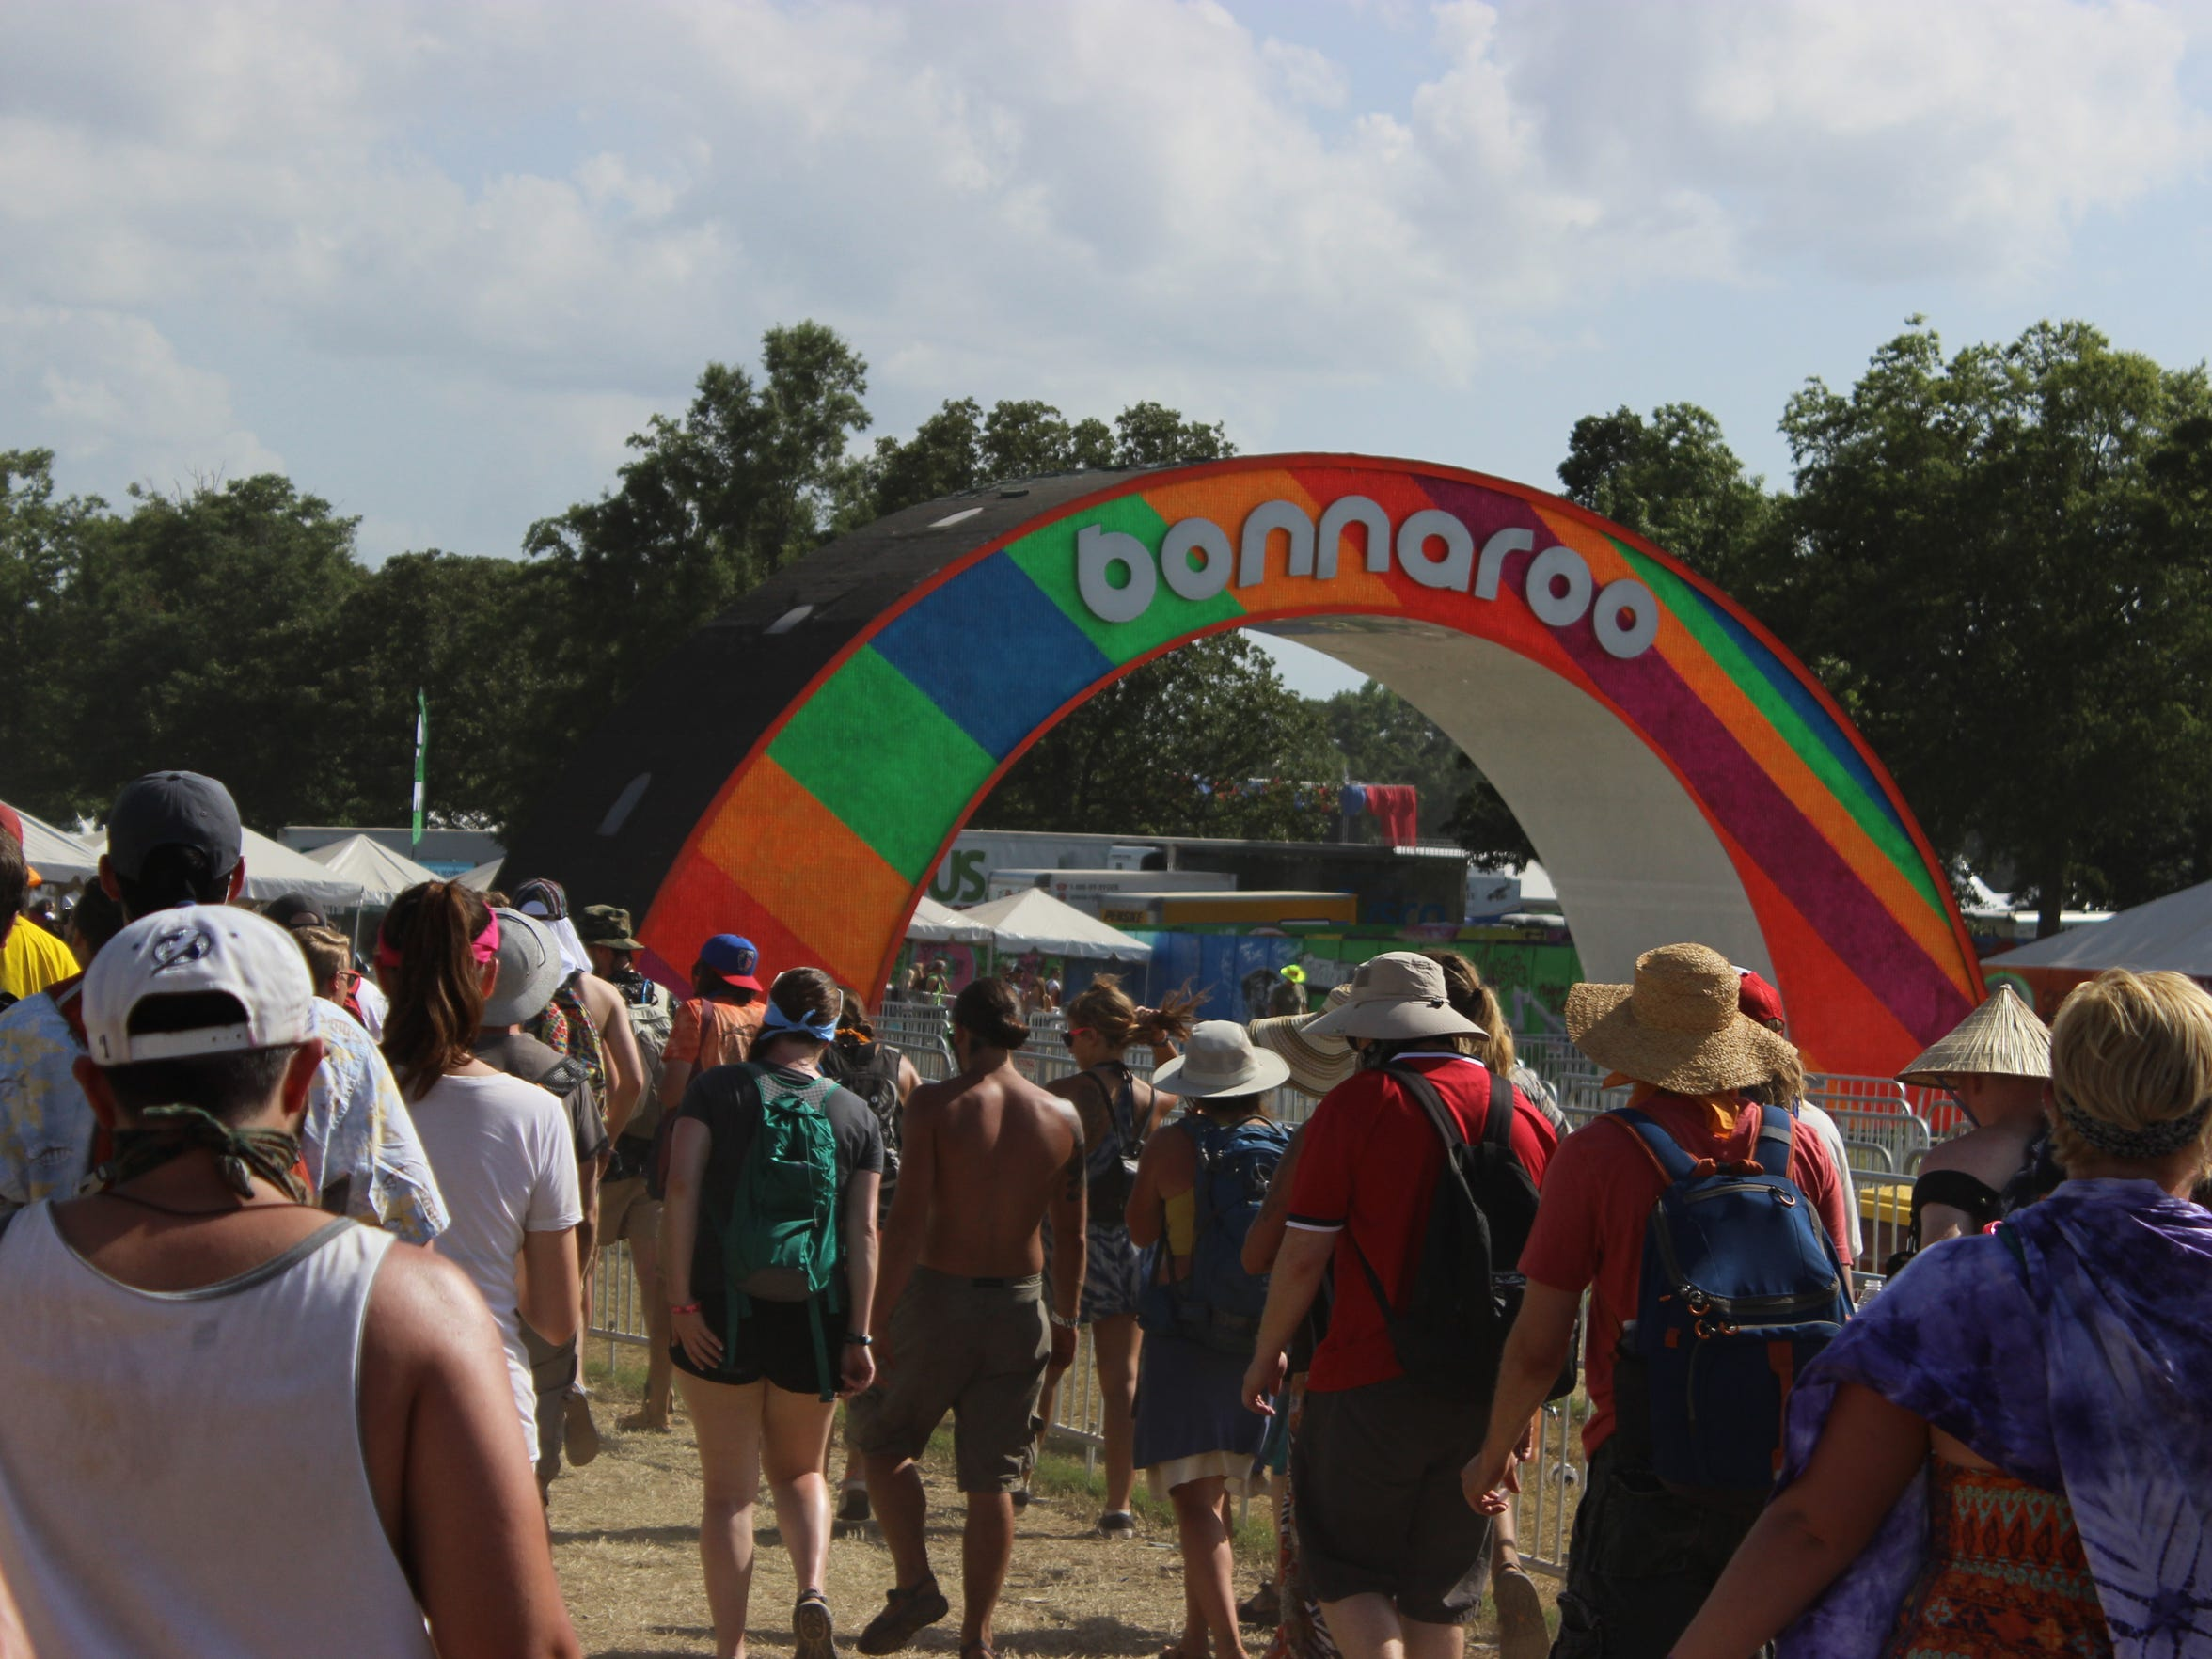 Manchester, Tenn., plays host to the Bonnaroo Arts and Music Festival each June.